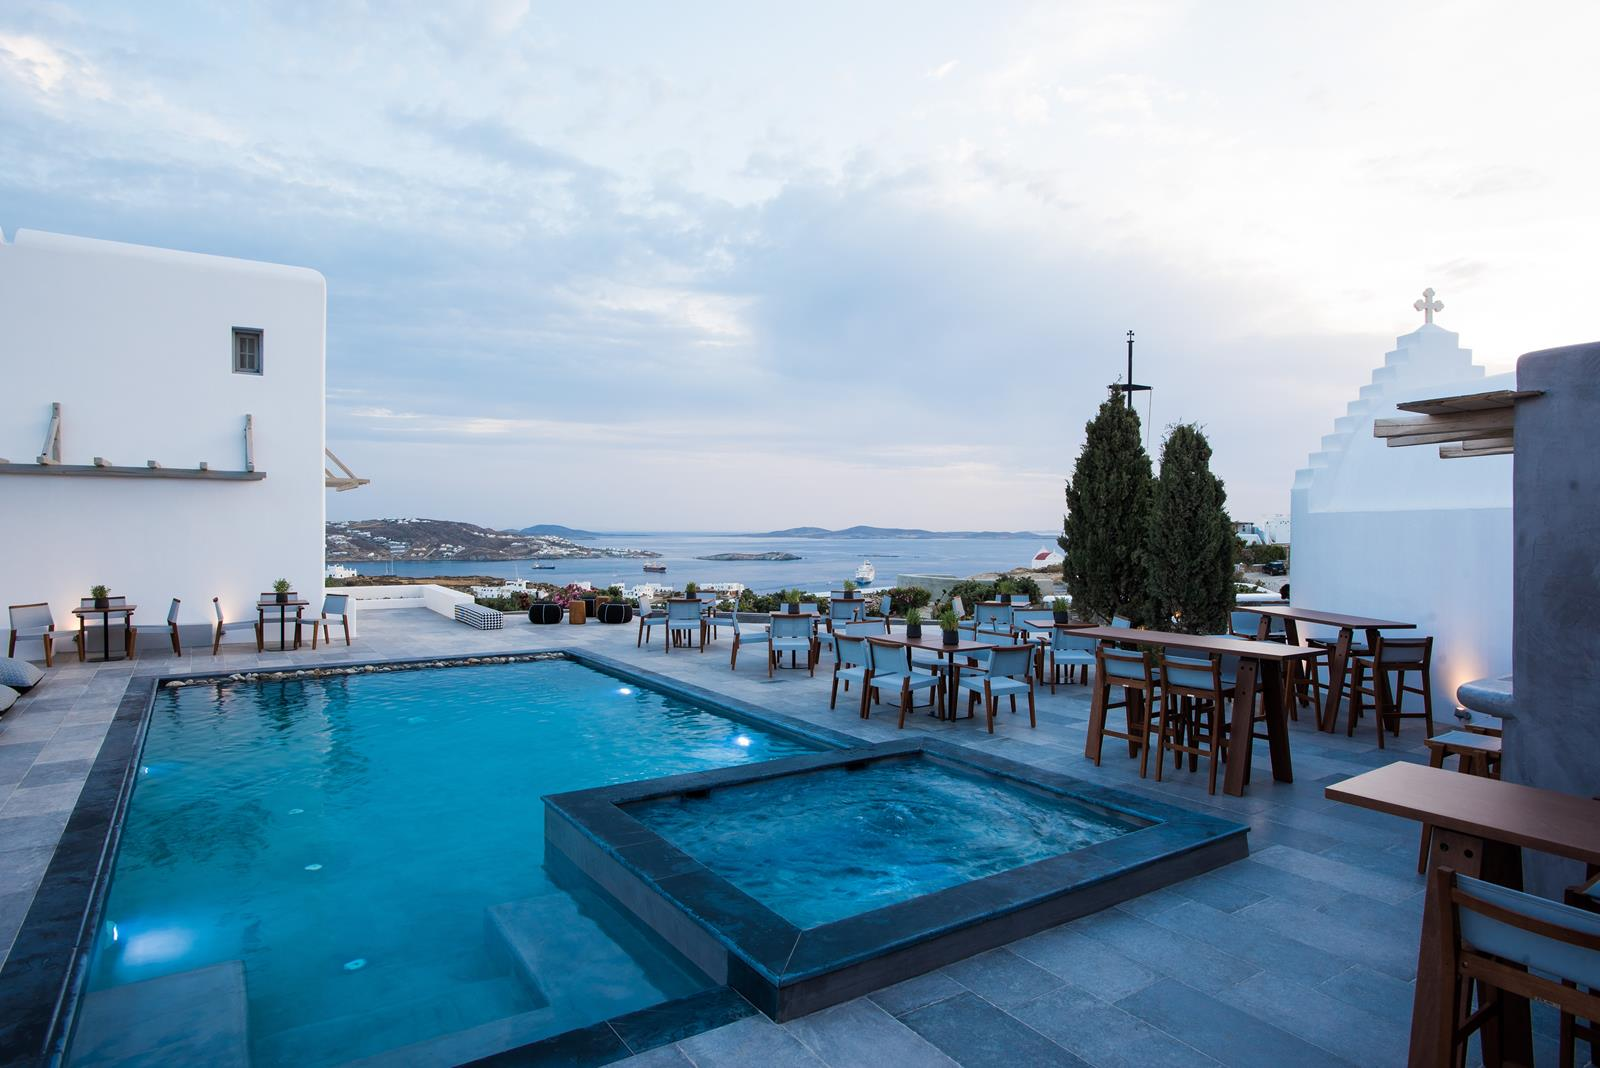 Hotels & Accommodation in Mykonos - Aletro Cottage Houses